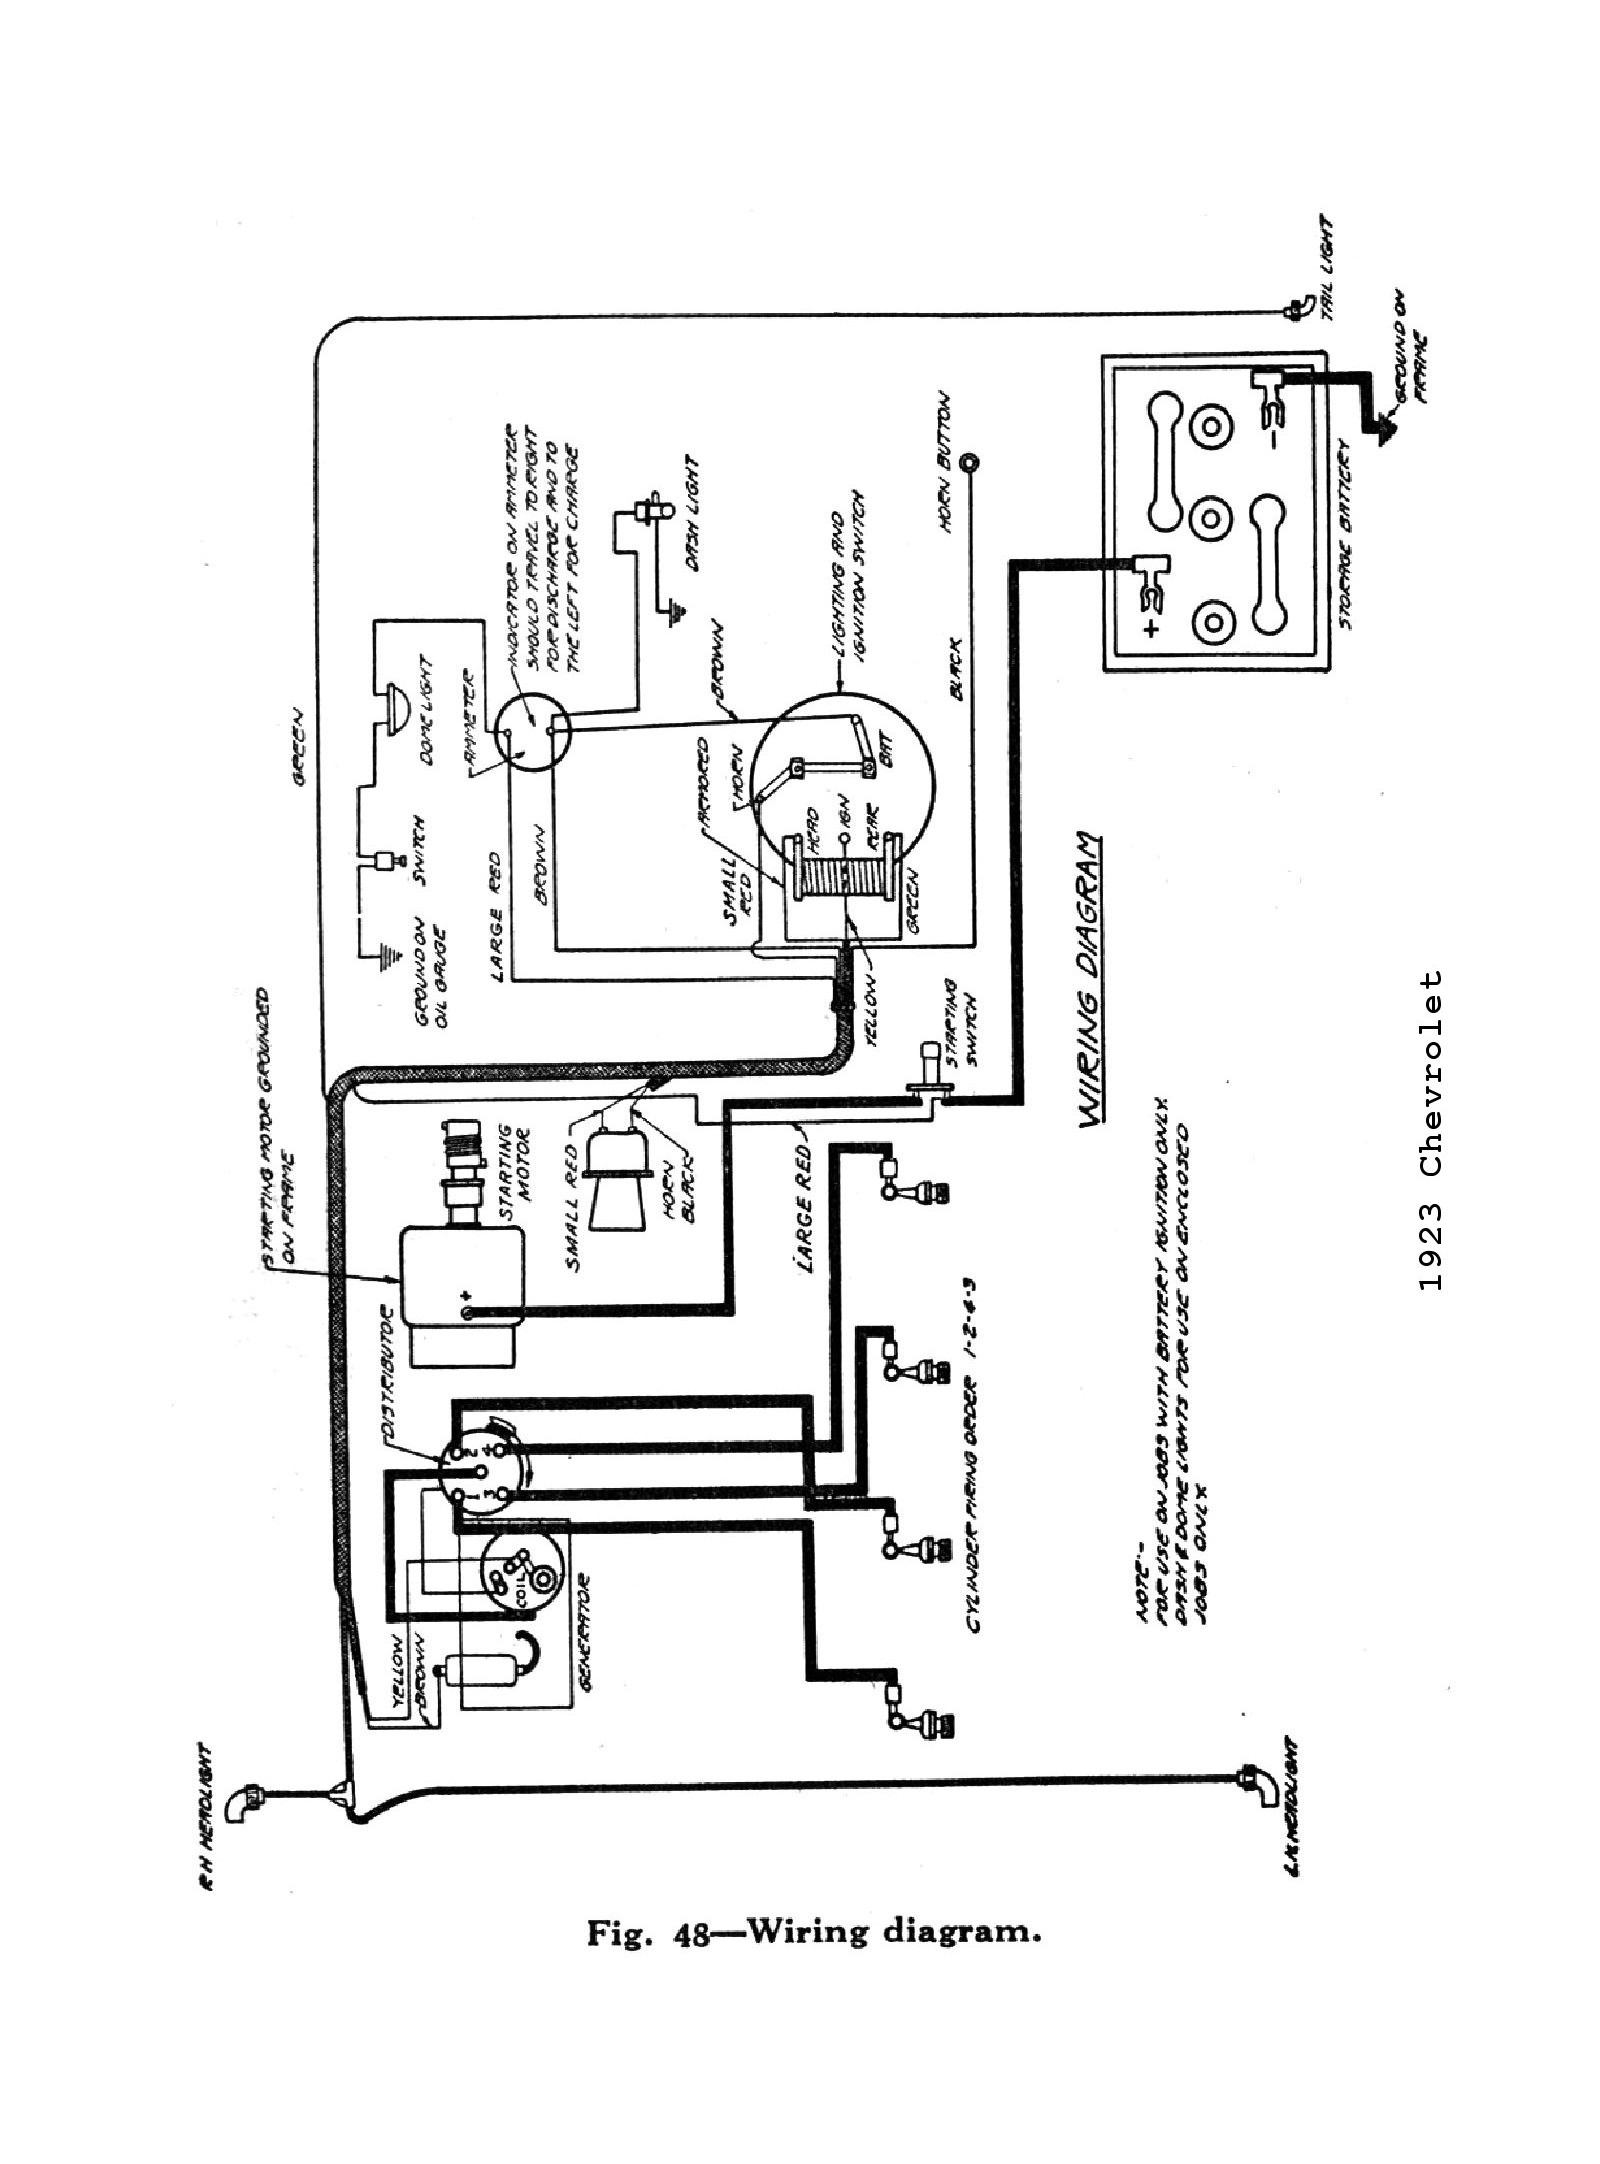 1960 cadillac radio wiring diagram schematic